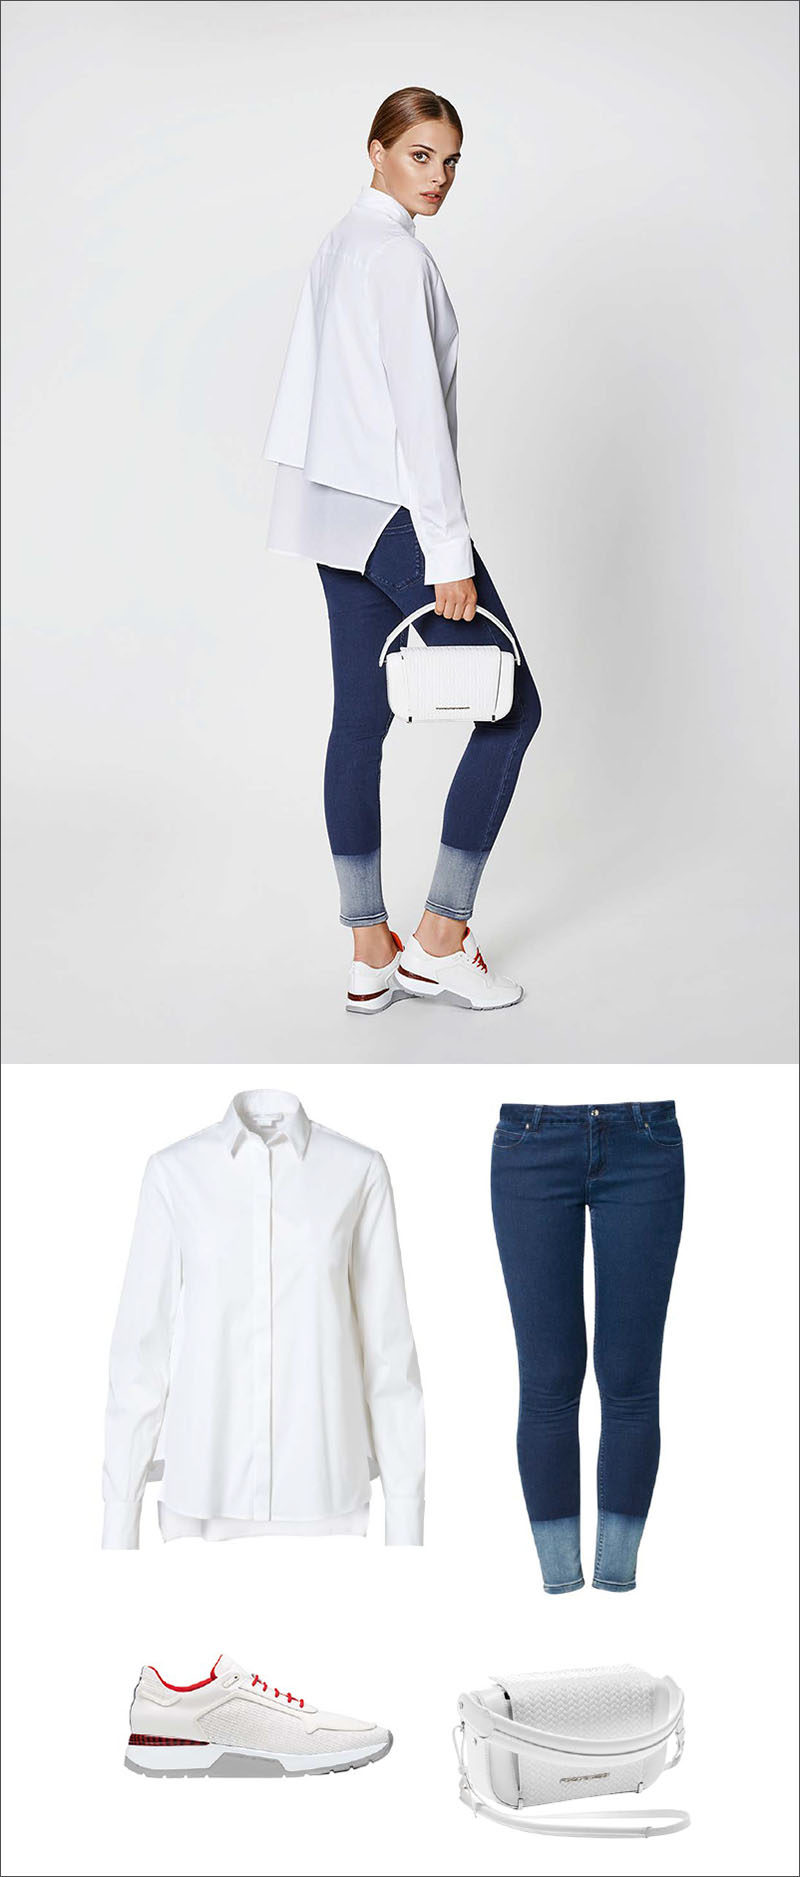 Women's Fashion Ideas - 12 Womens Outfits From Porsche Design's 2017 Spring/Summer Collection // This casual women's outfit is made up of a white draped blouse, two toned jeans, a white bag, and red and white shoes for a little pop of color.